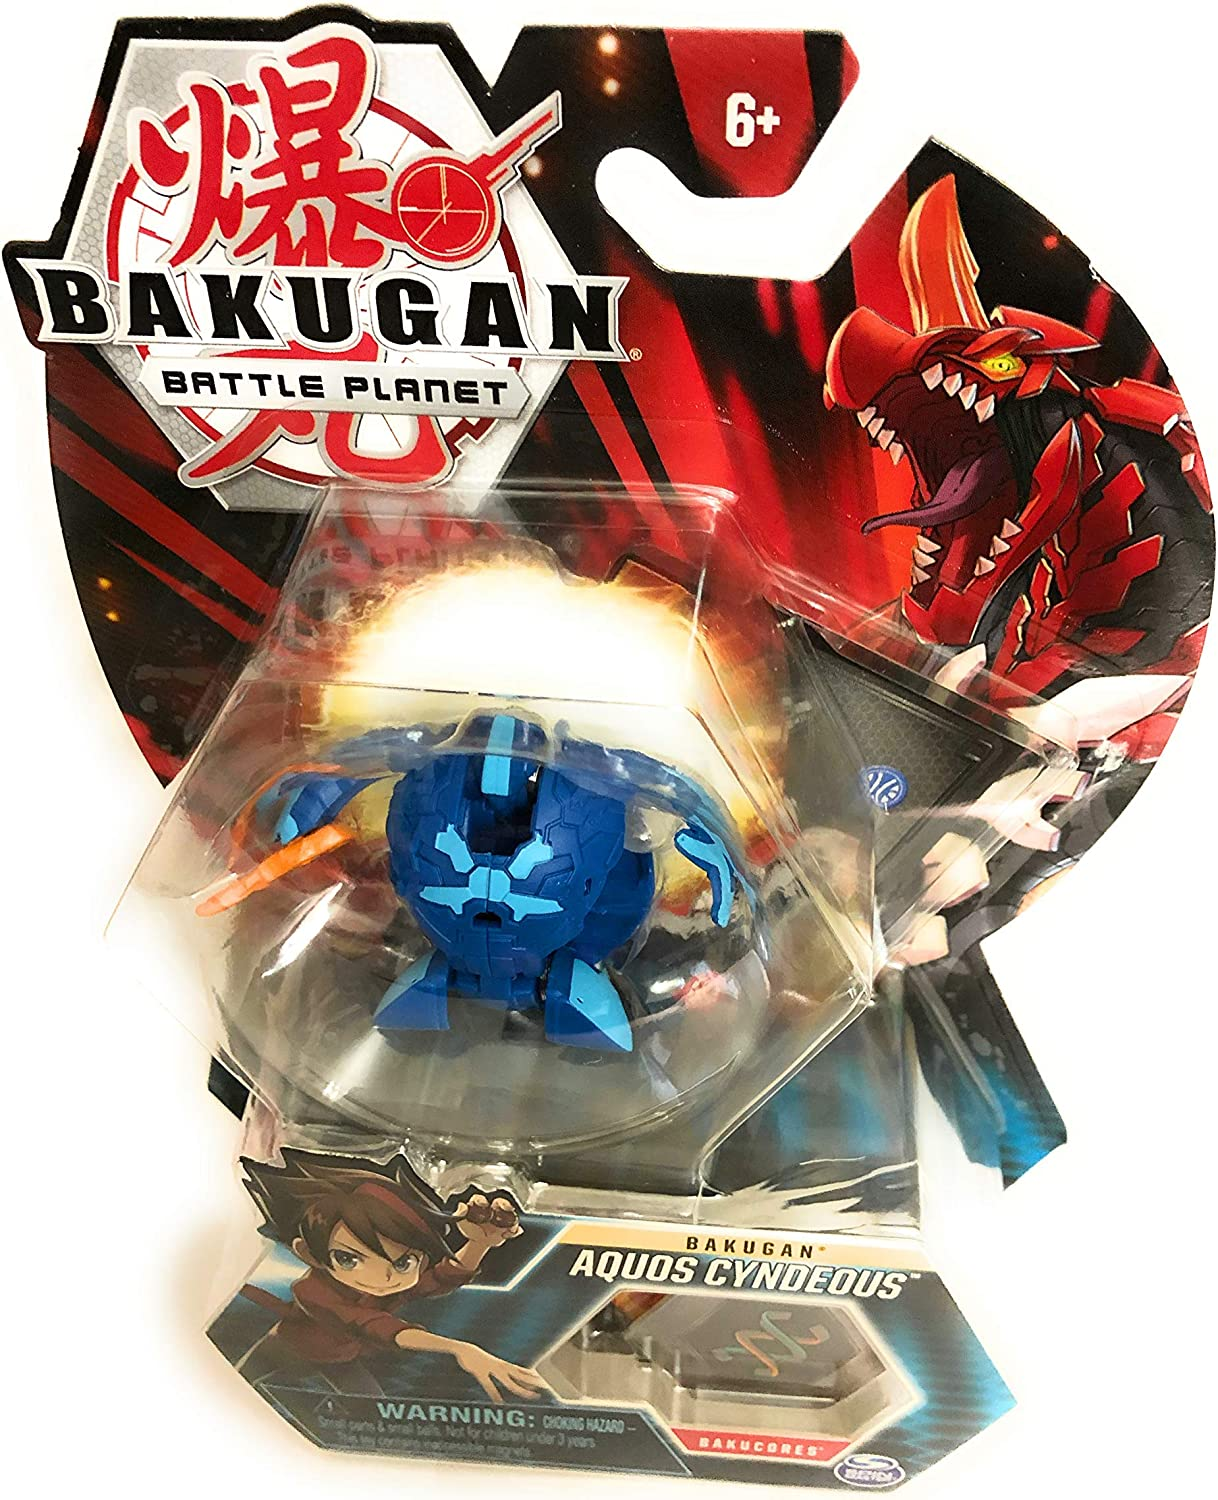 "Bakugan, Aquos Cyndeous, 2"" Tall Collectible Transforming Creature, for Ages 6 & Up"